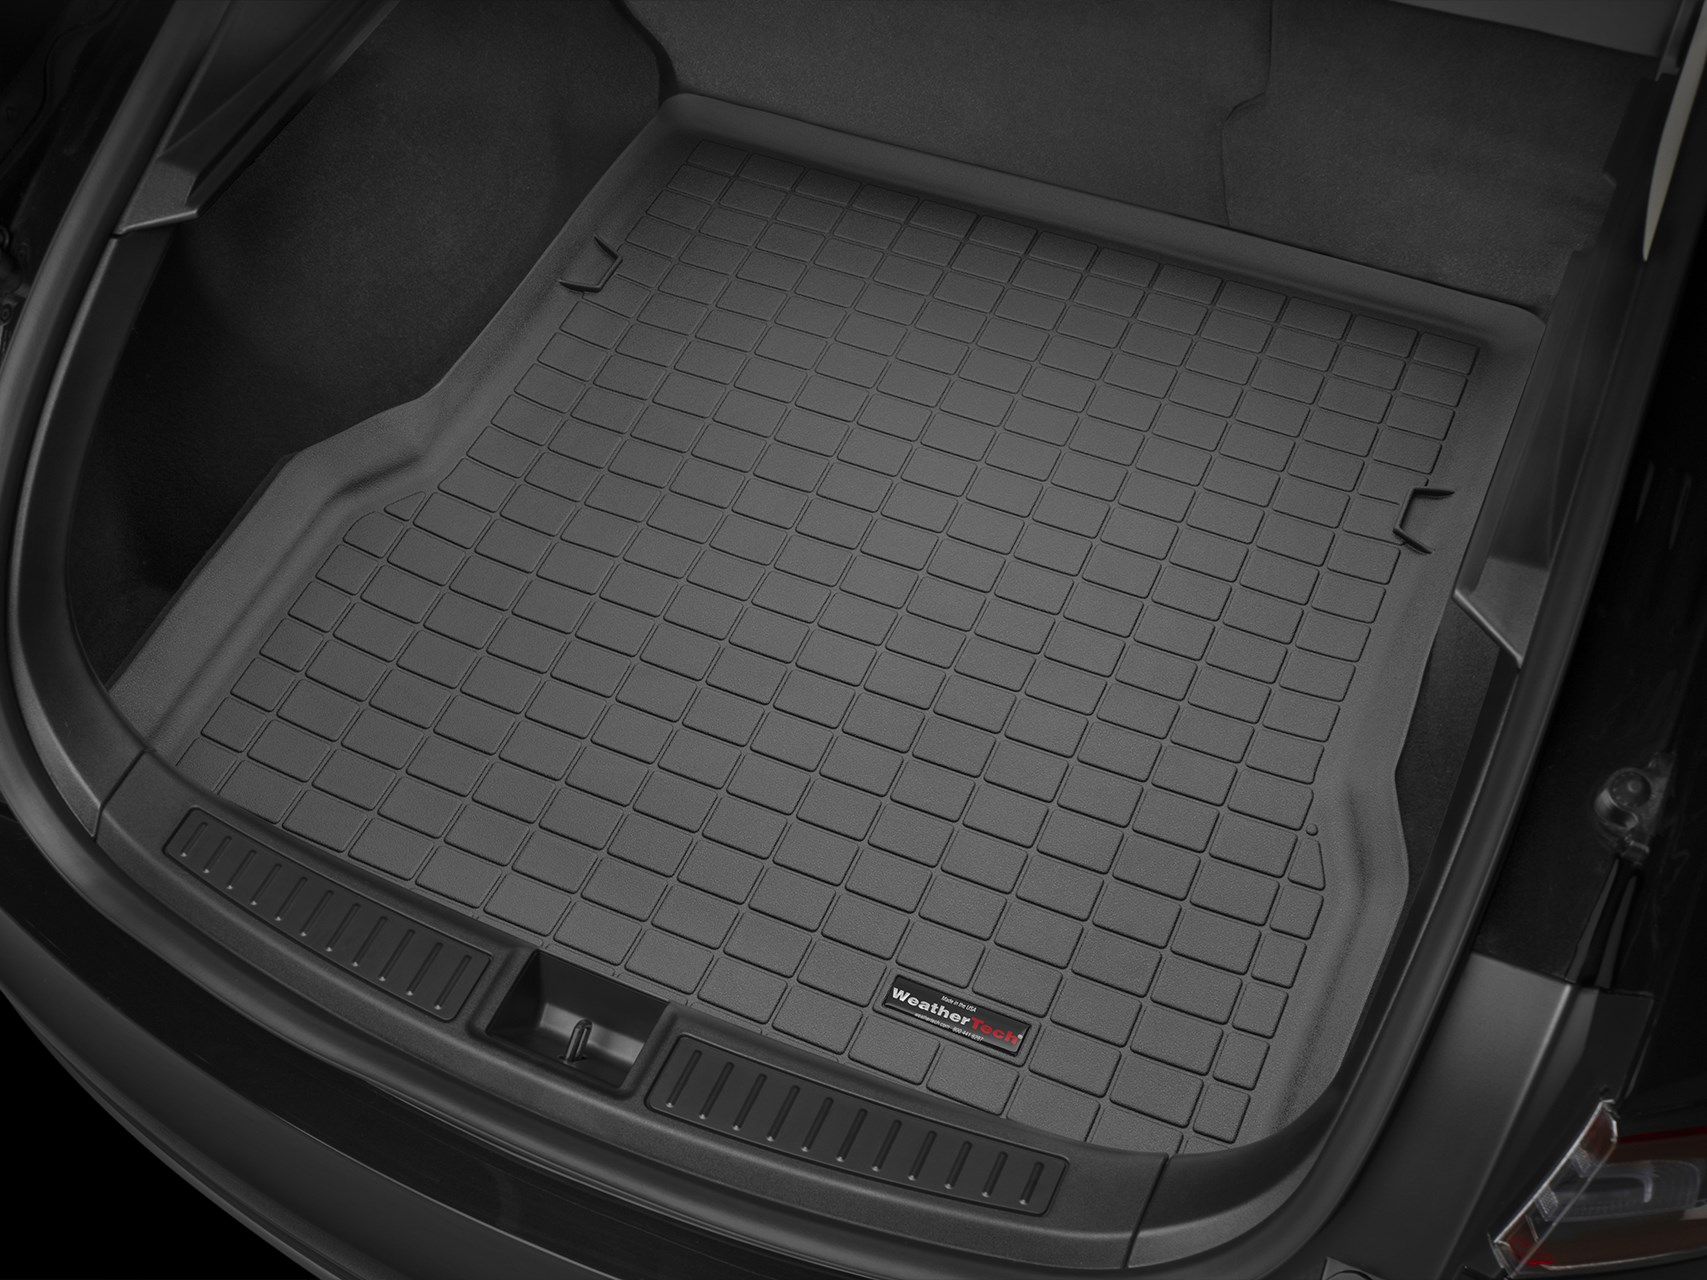 Weathertech cargo truck liner for cars and trucks, ex. $109.95 for a Jeep Grand Cherokee (behind second row seating) trunk liner